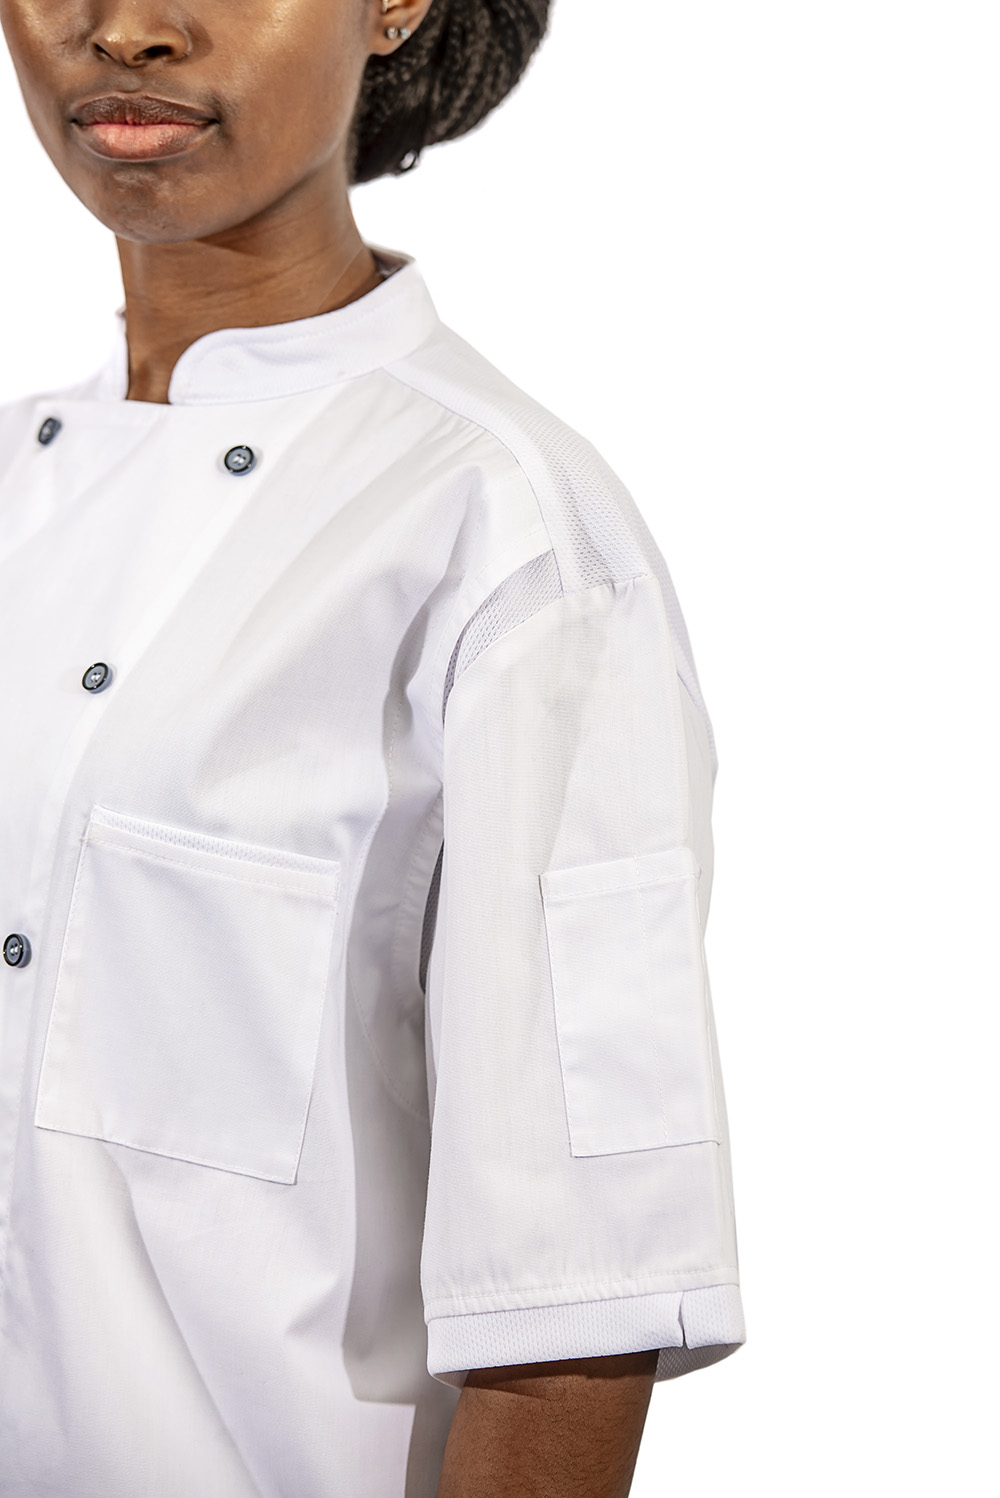 white birdseye chef jacket close up